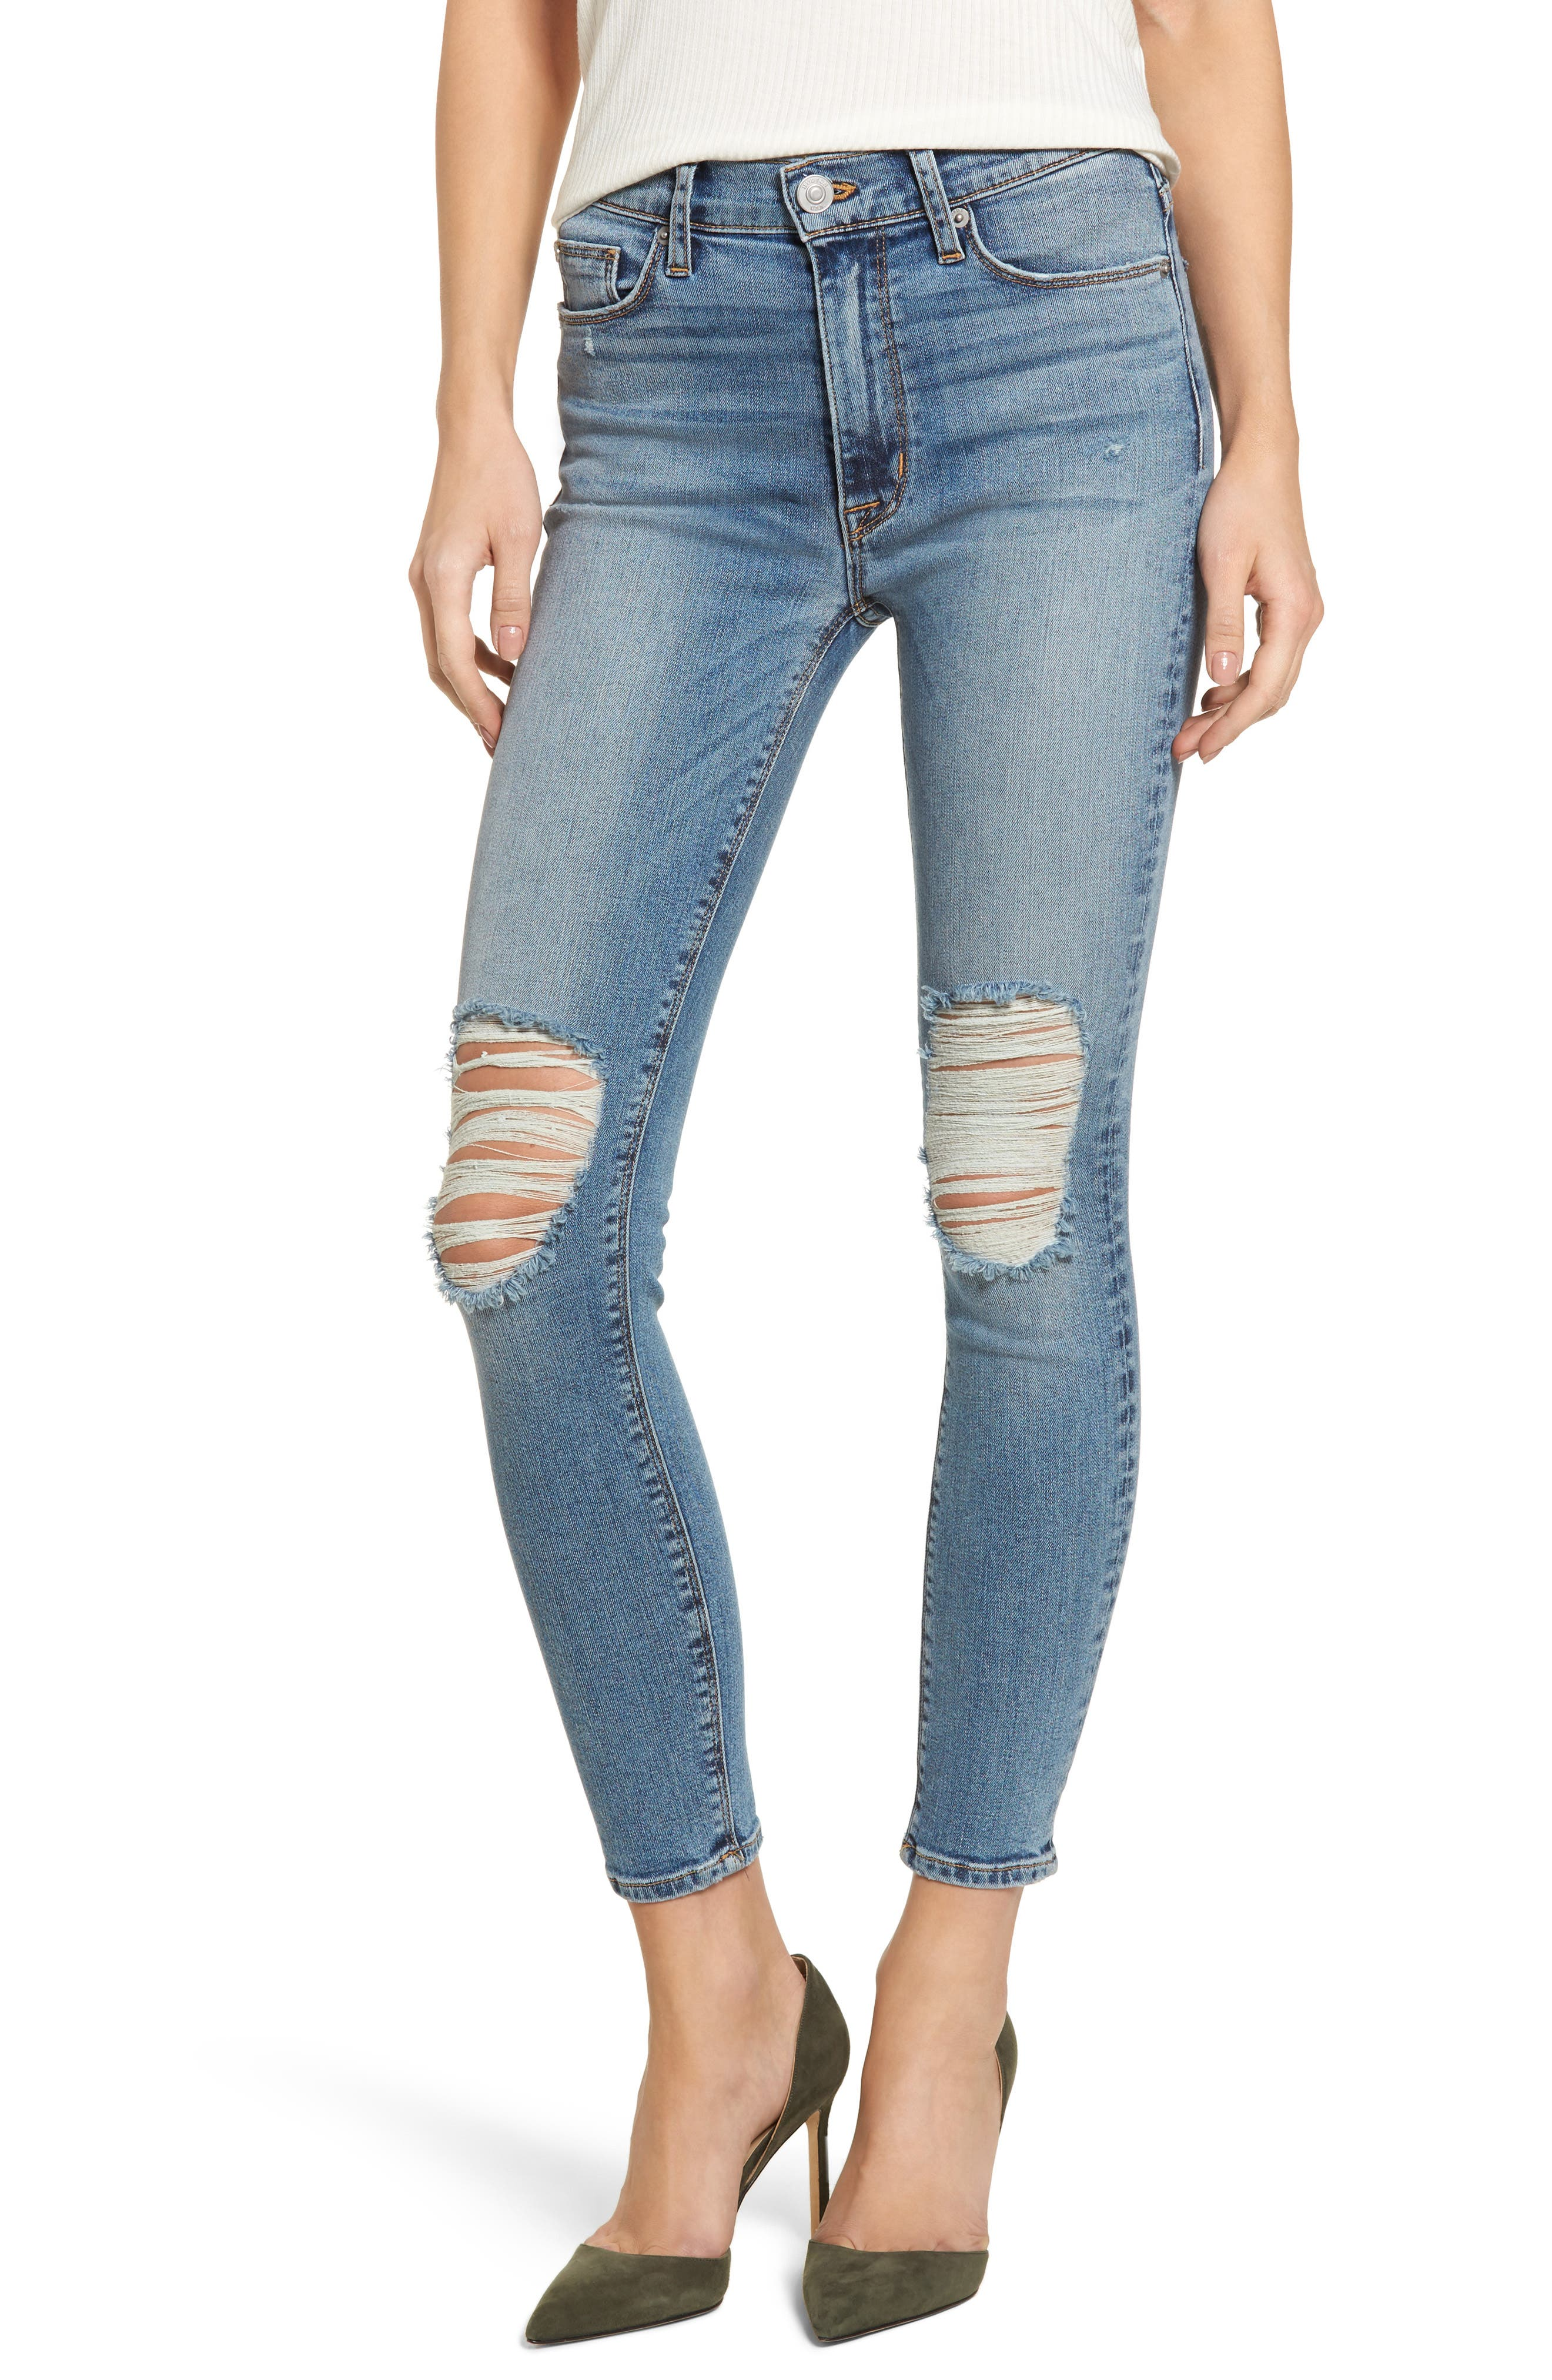 Alternate Image 1 Selected - Hudson Jeans Barbara High Waist Ankle Skinny Jeans (Confection)